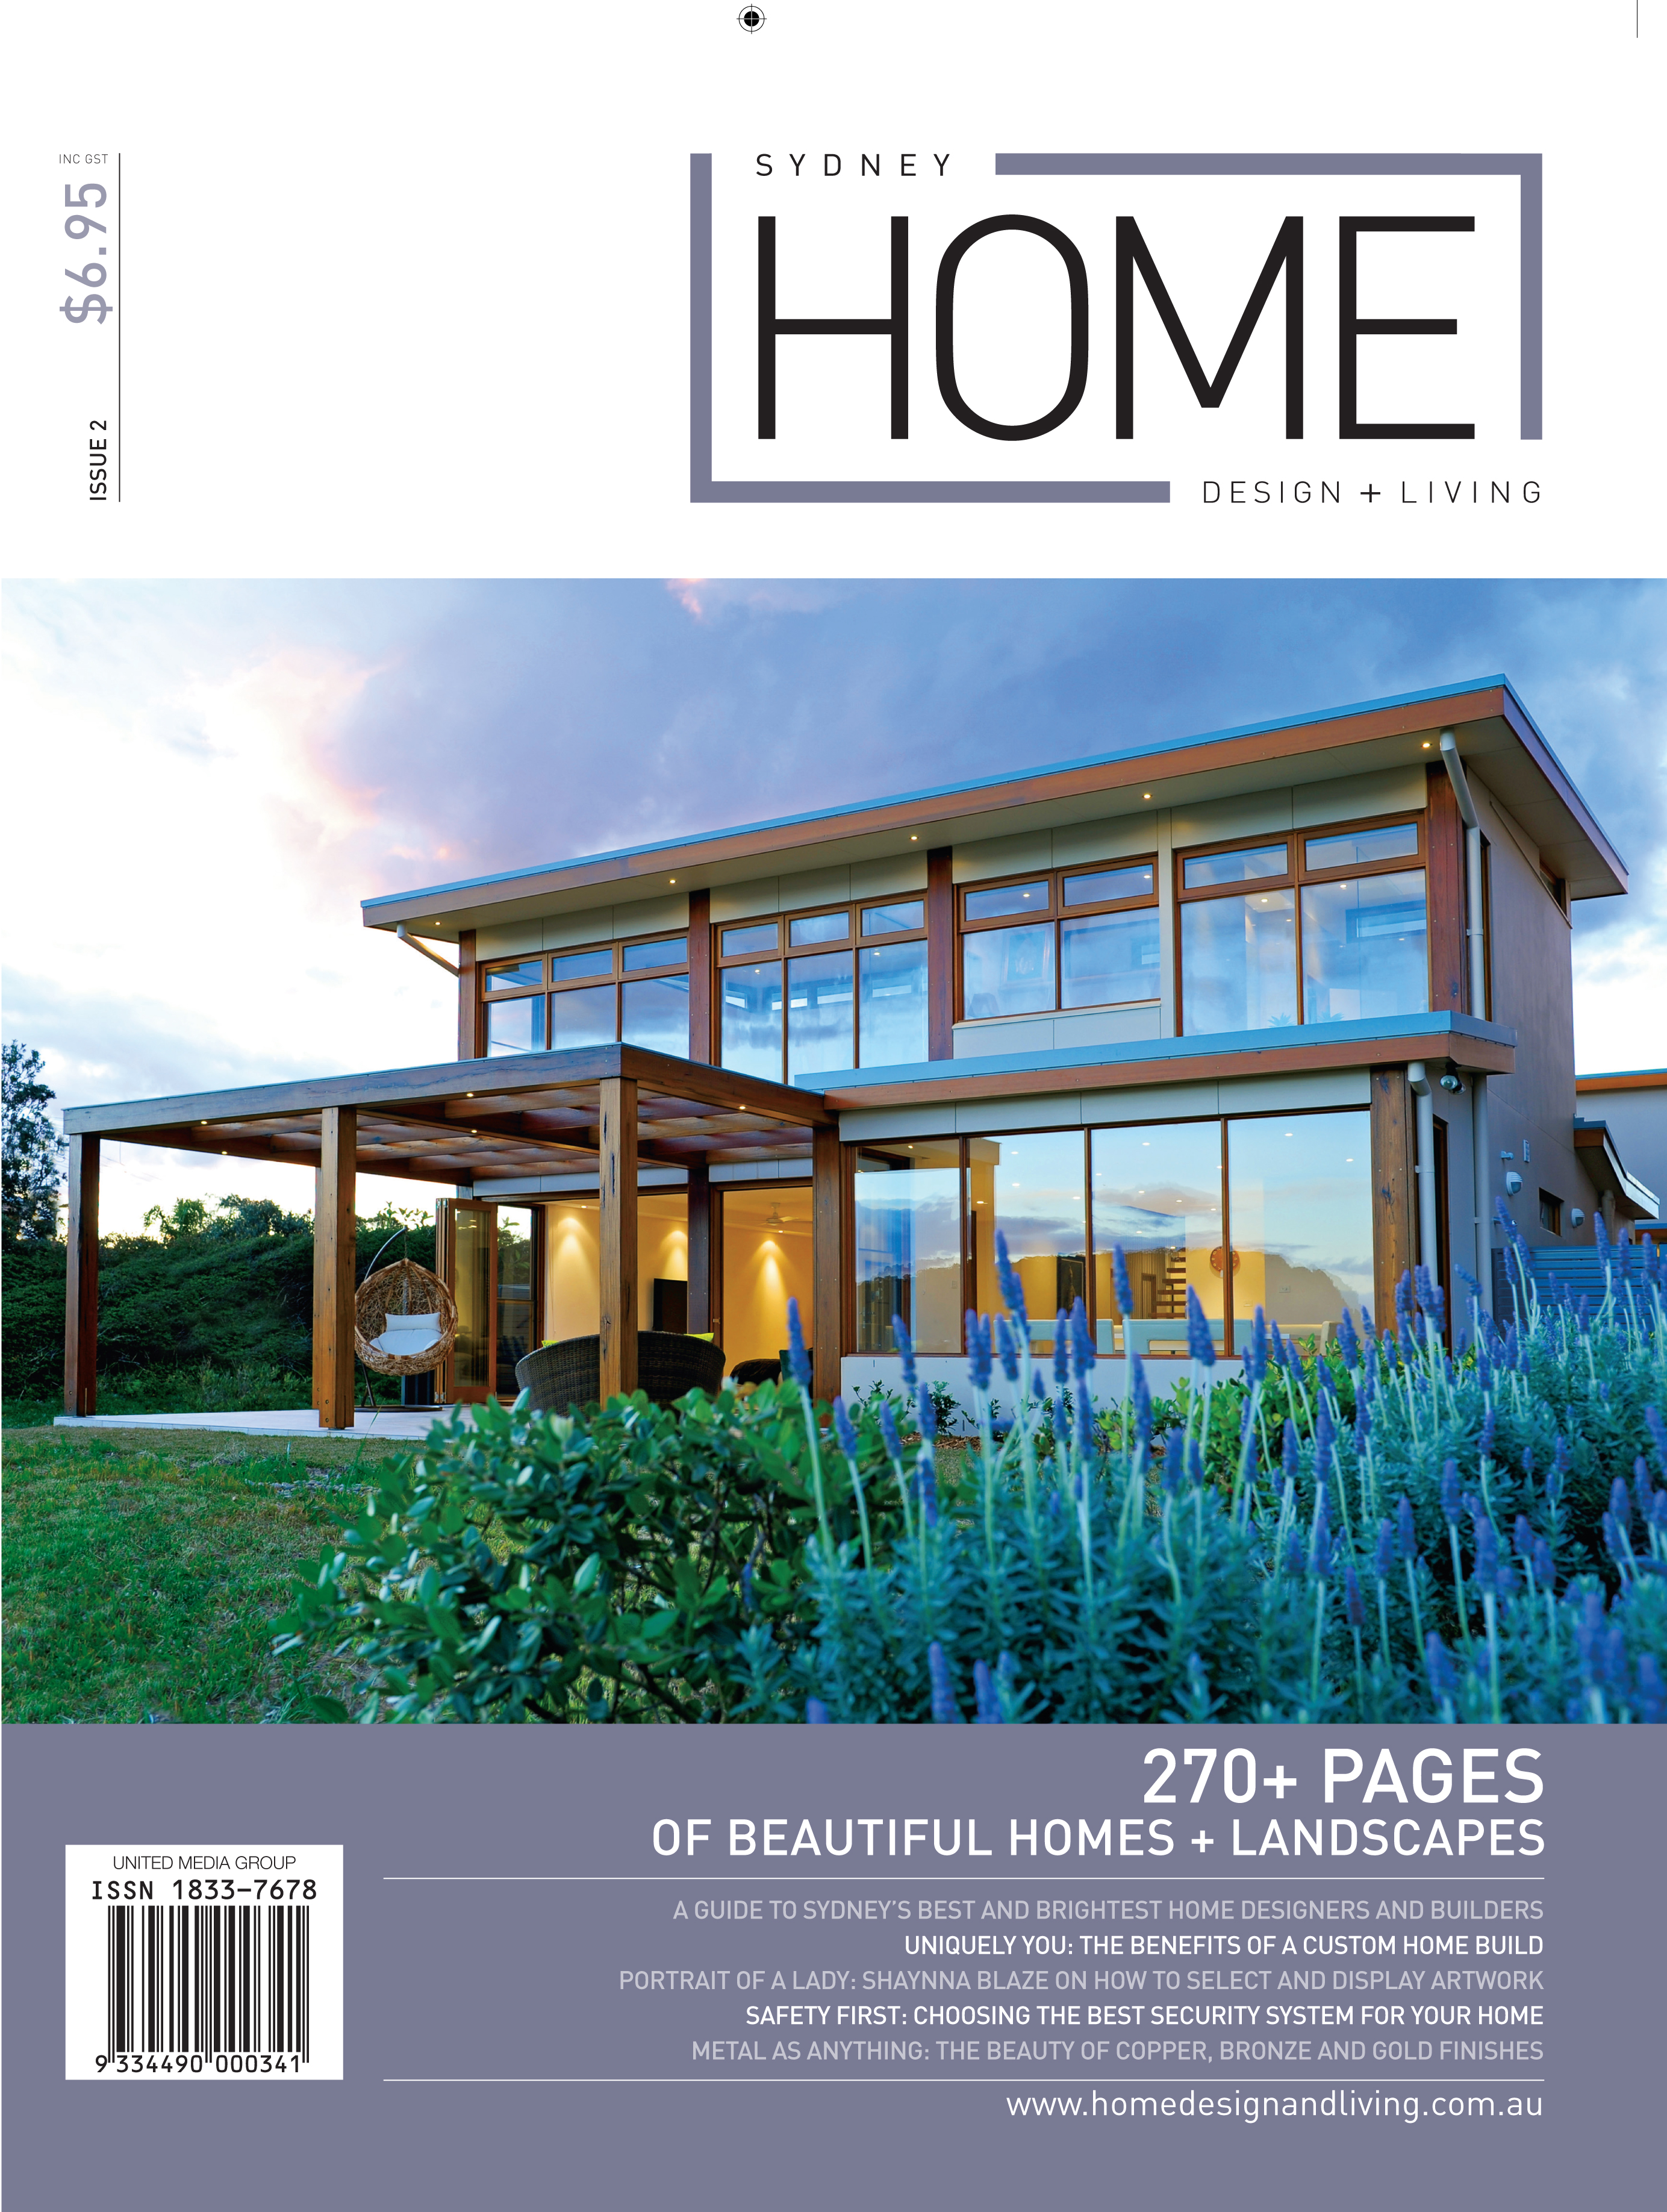 home design + living magazines - united media group